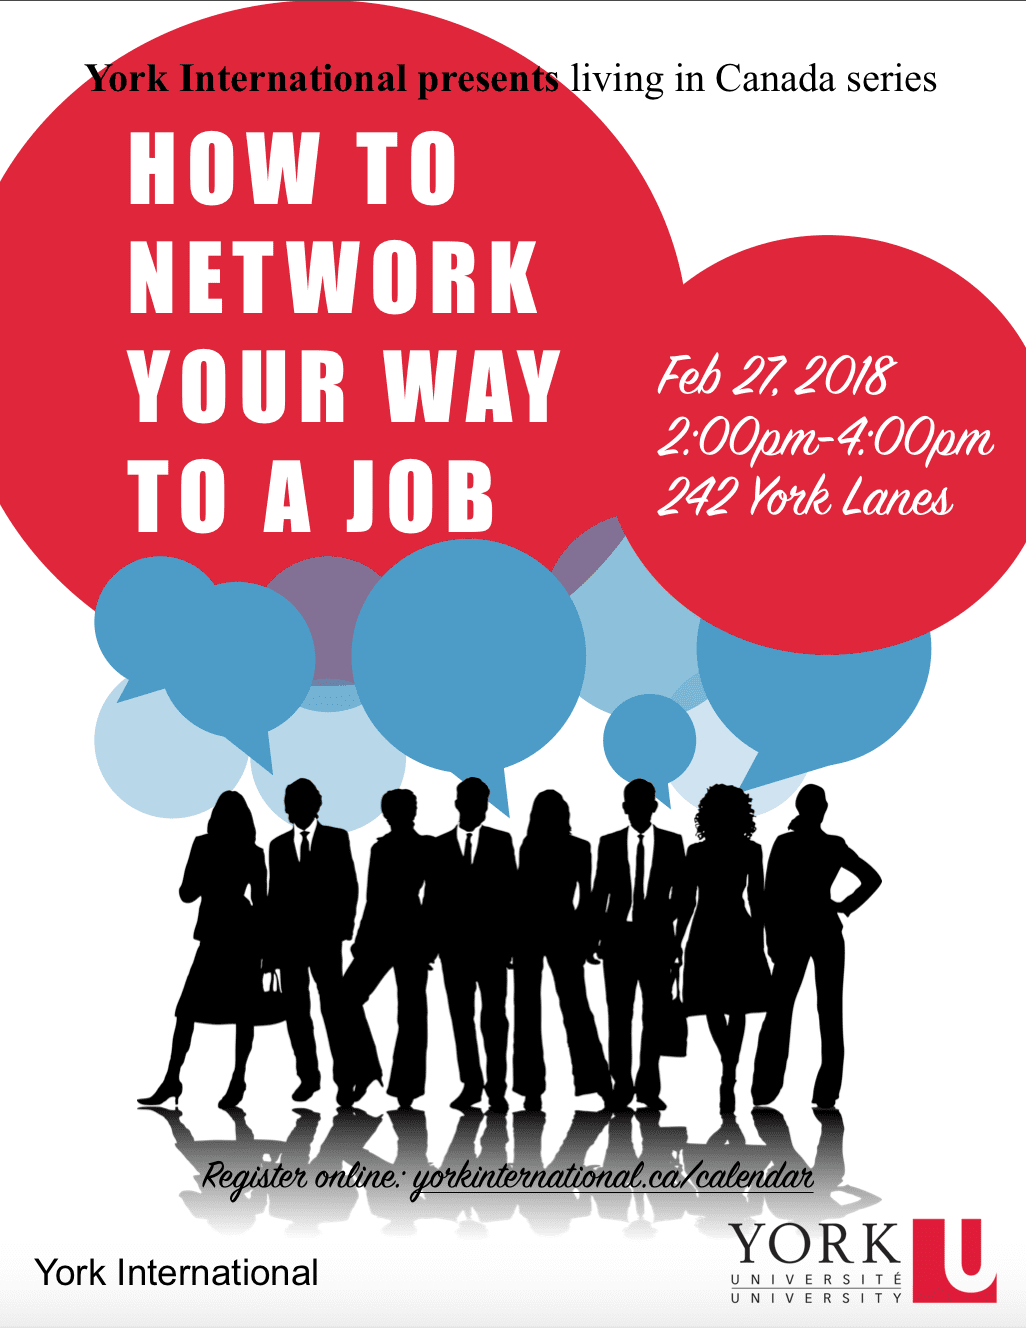 How to Network Your Way to a Job Workshop @ 242 York Lanes